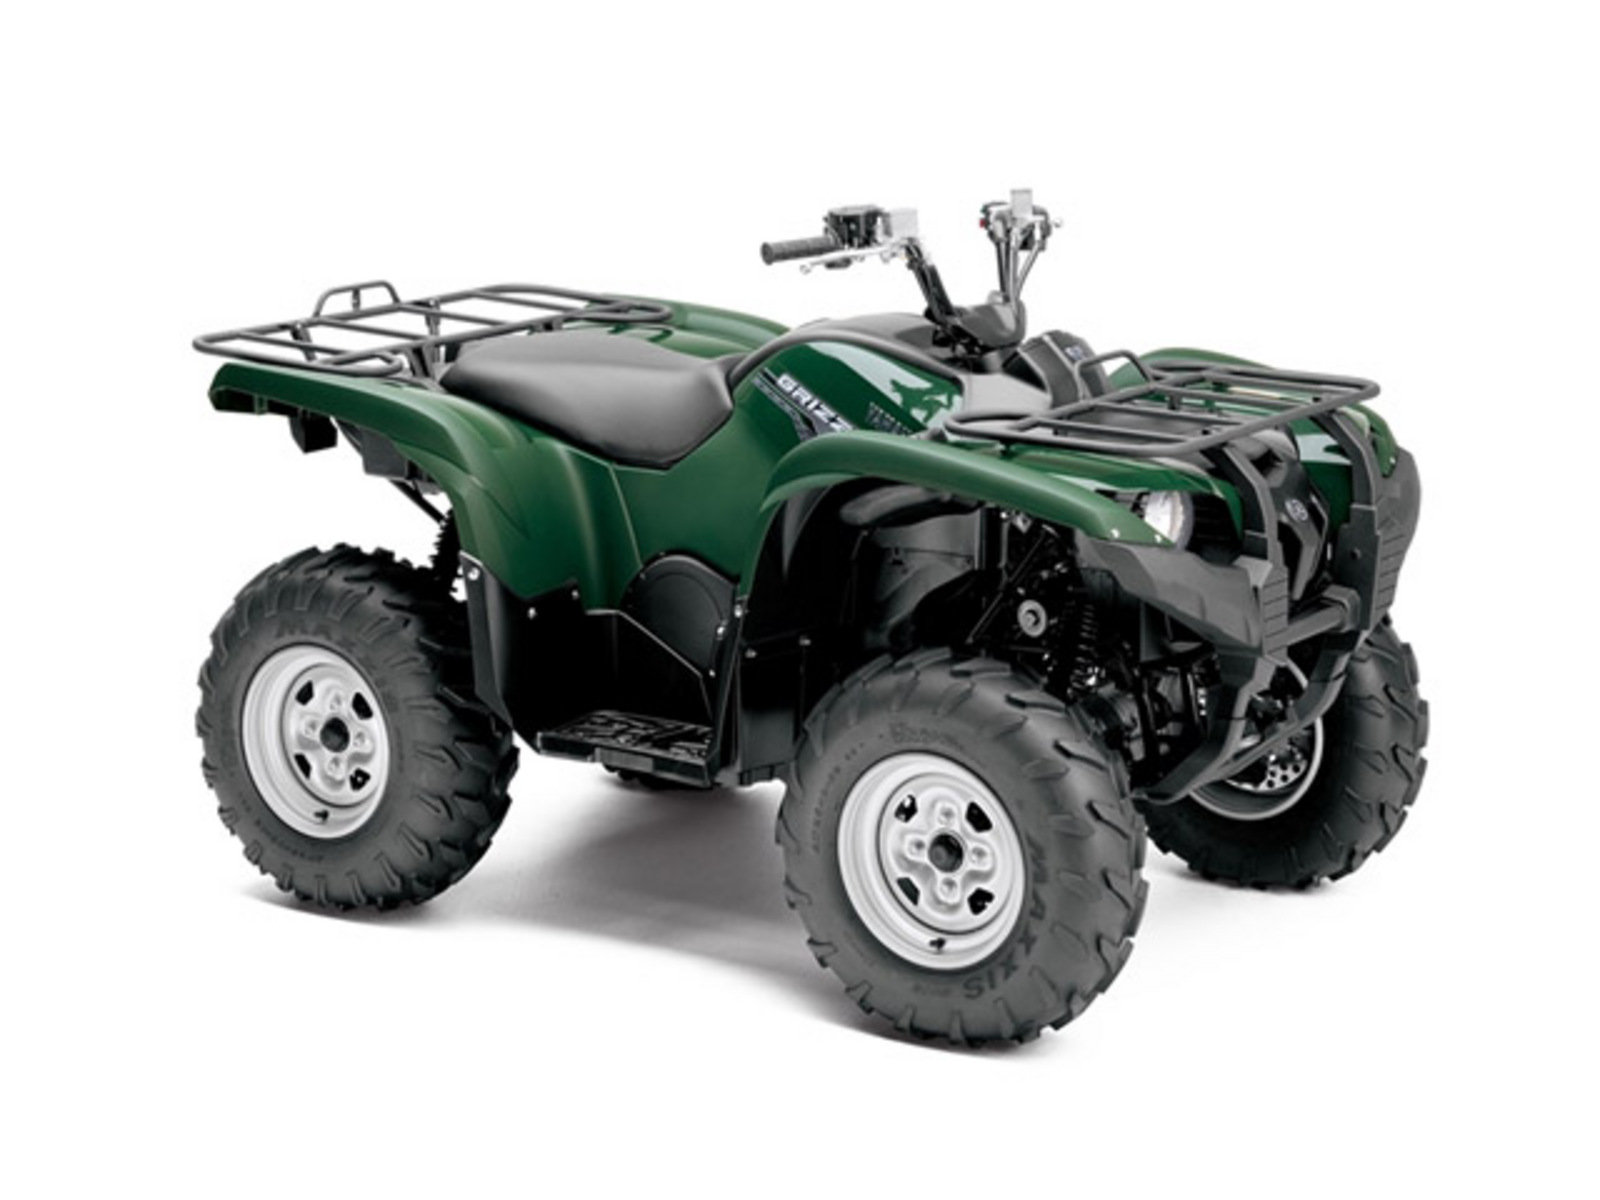 Yamaha Grizzly 125 Transmission Problems 2007 Wiring Diagram News And Reviews Top Speed Rh Topspeed Com 1997